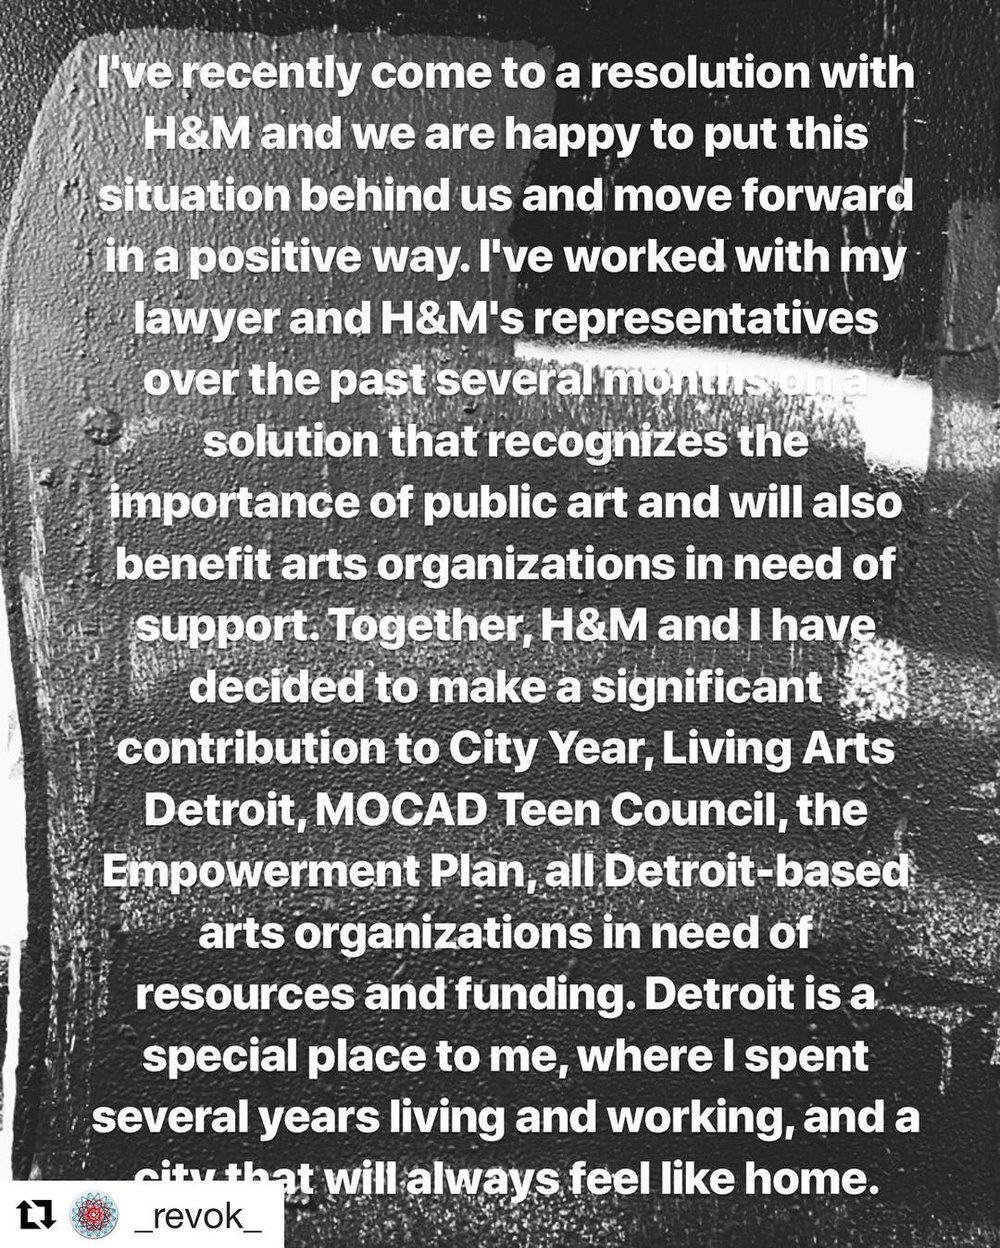 Statement from Revok's Instagram page.